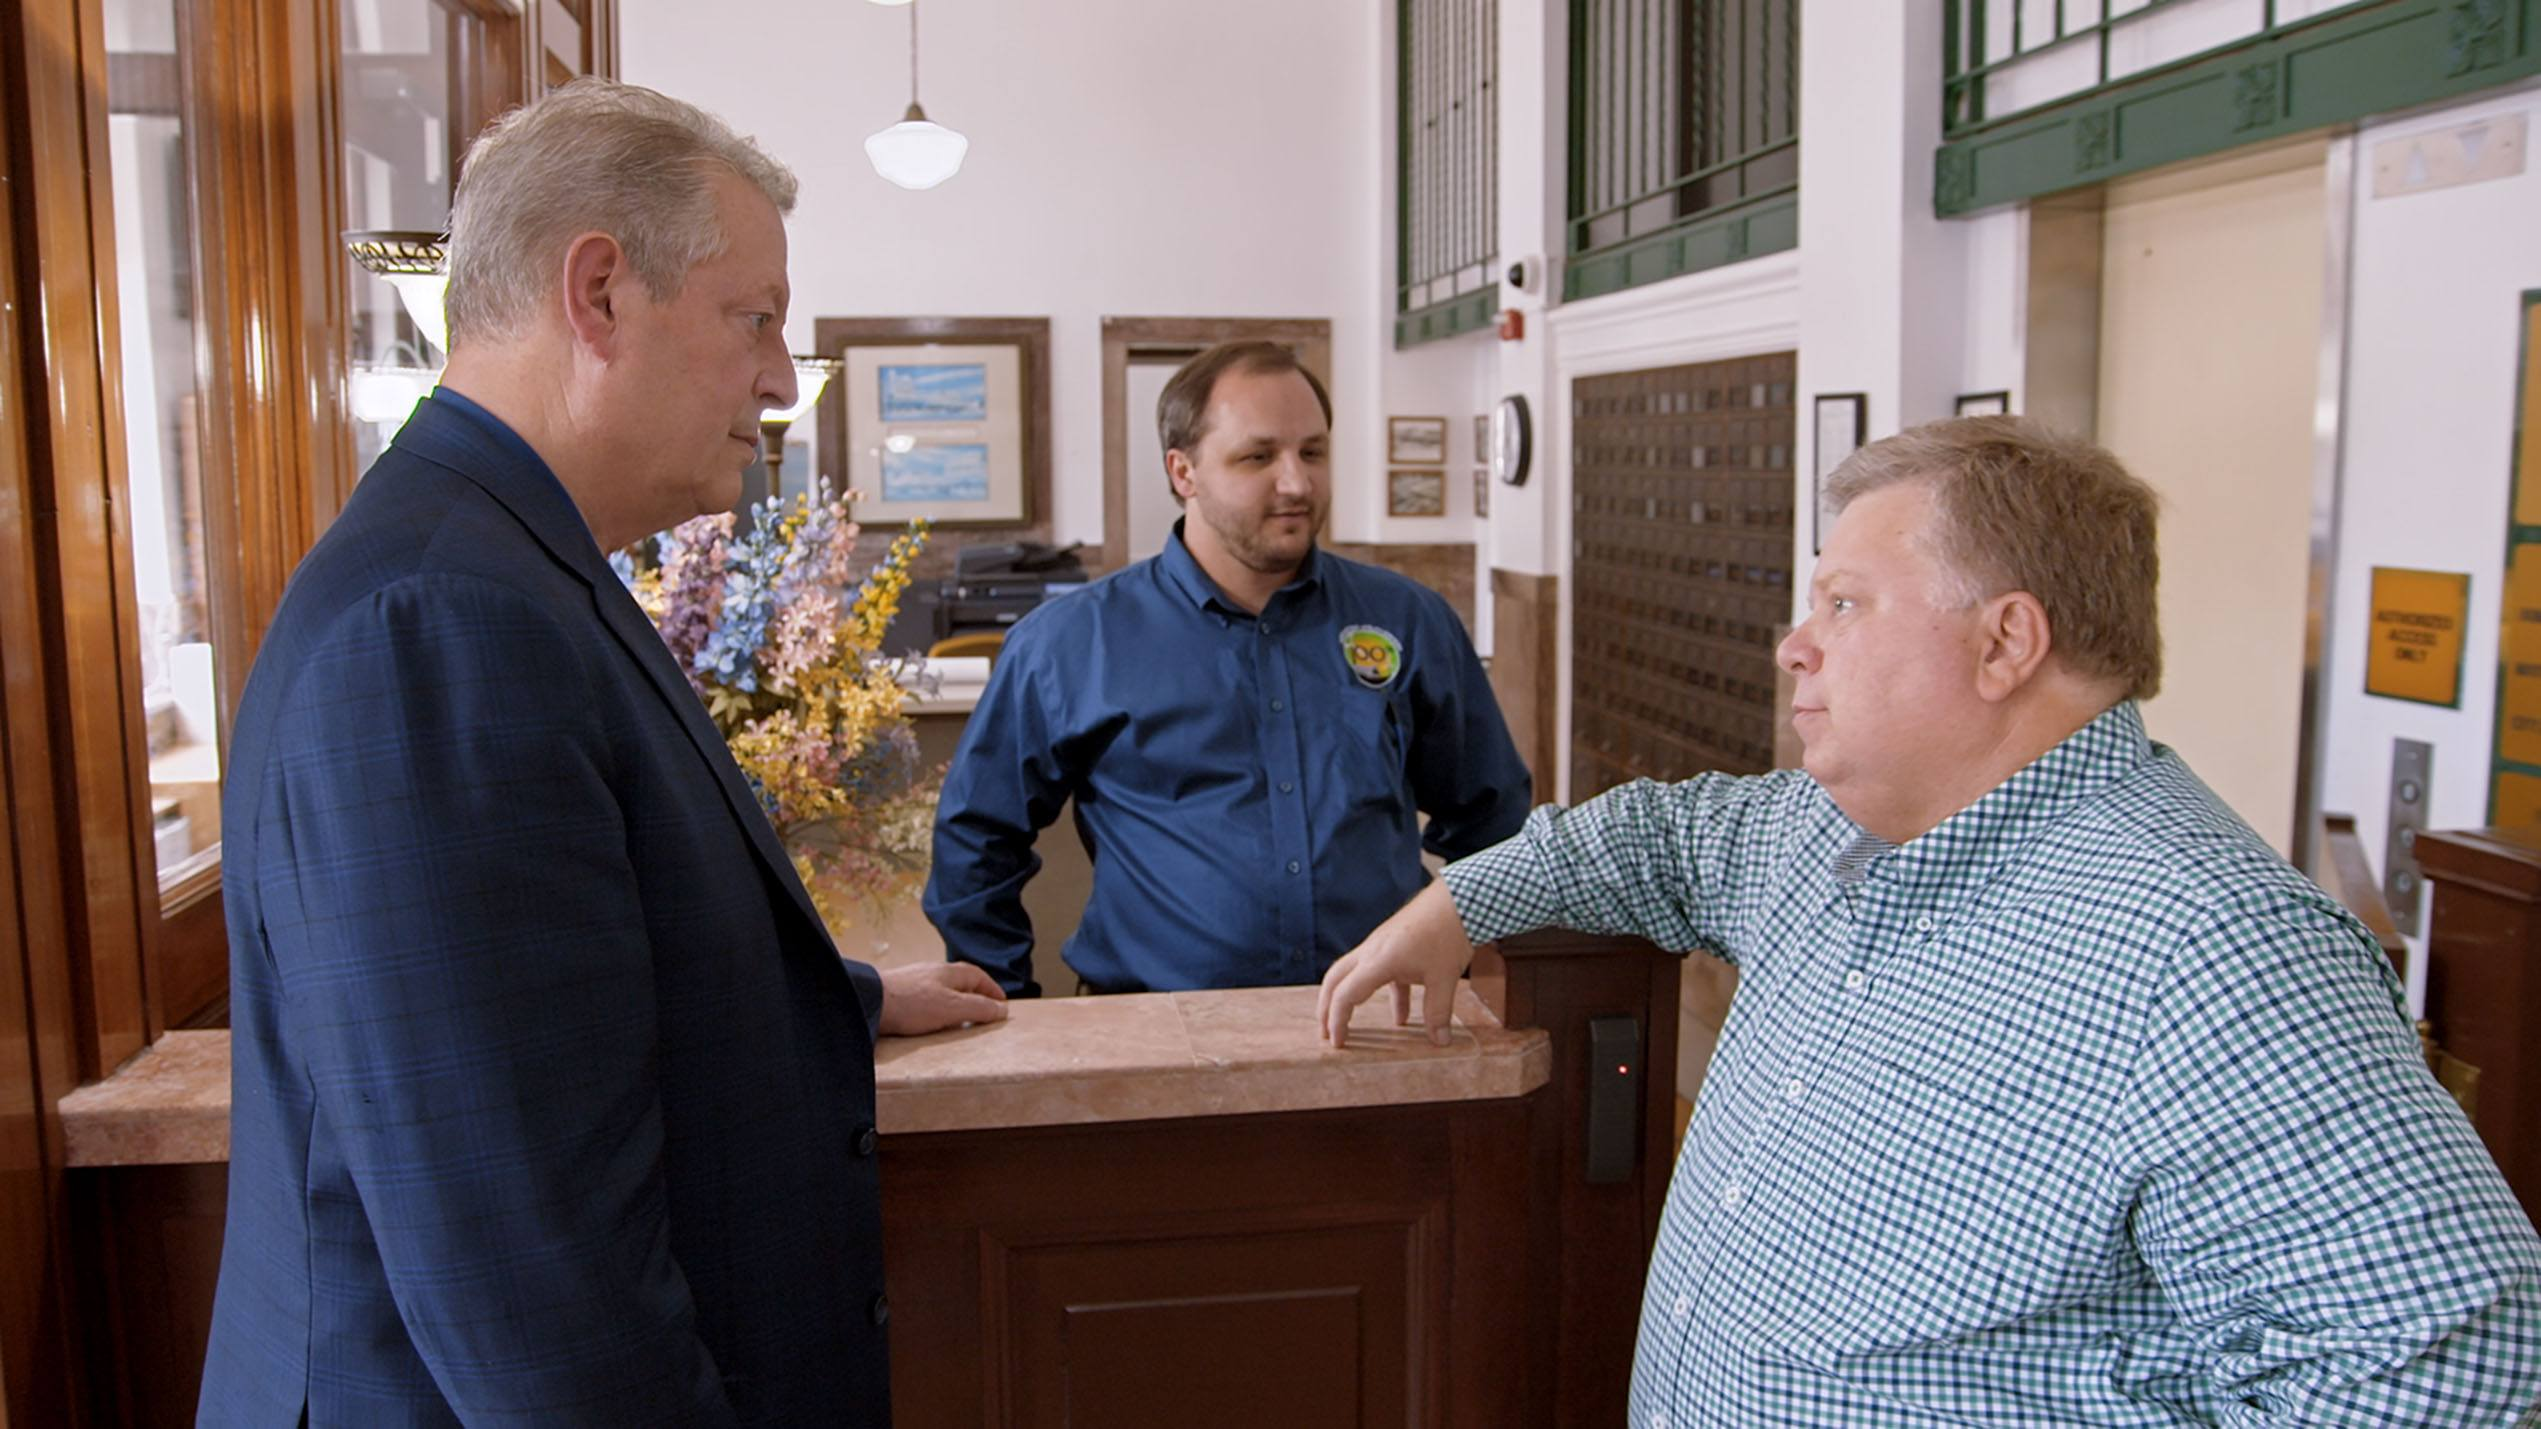 Al Gore meets Mayor Dale Ross of Georgetown, Texas, which has switched to 100% renewable energy, in An Inconvenient Sequel: Truth To Power (Paramount Pictures and Participant Media)